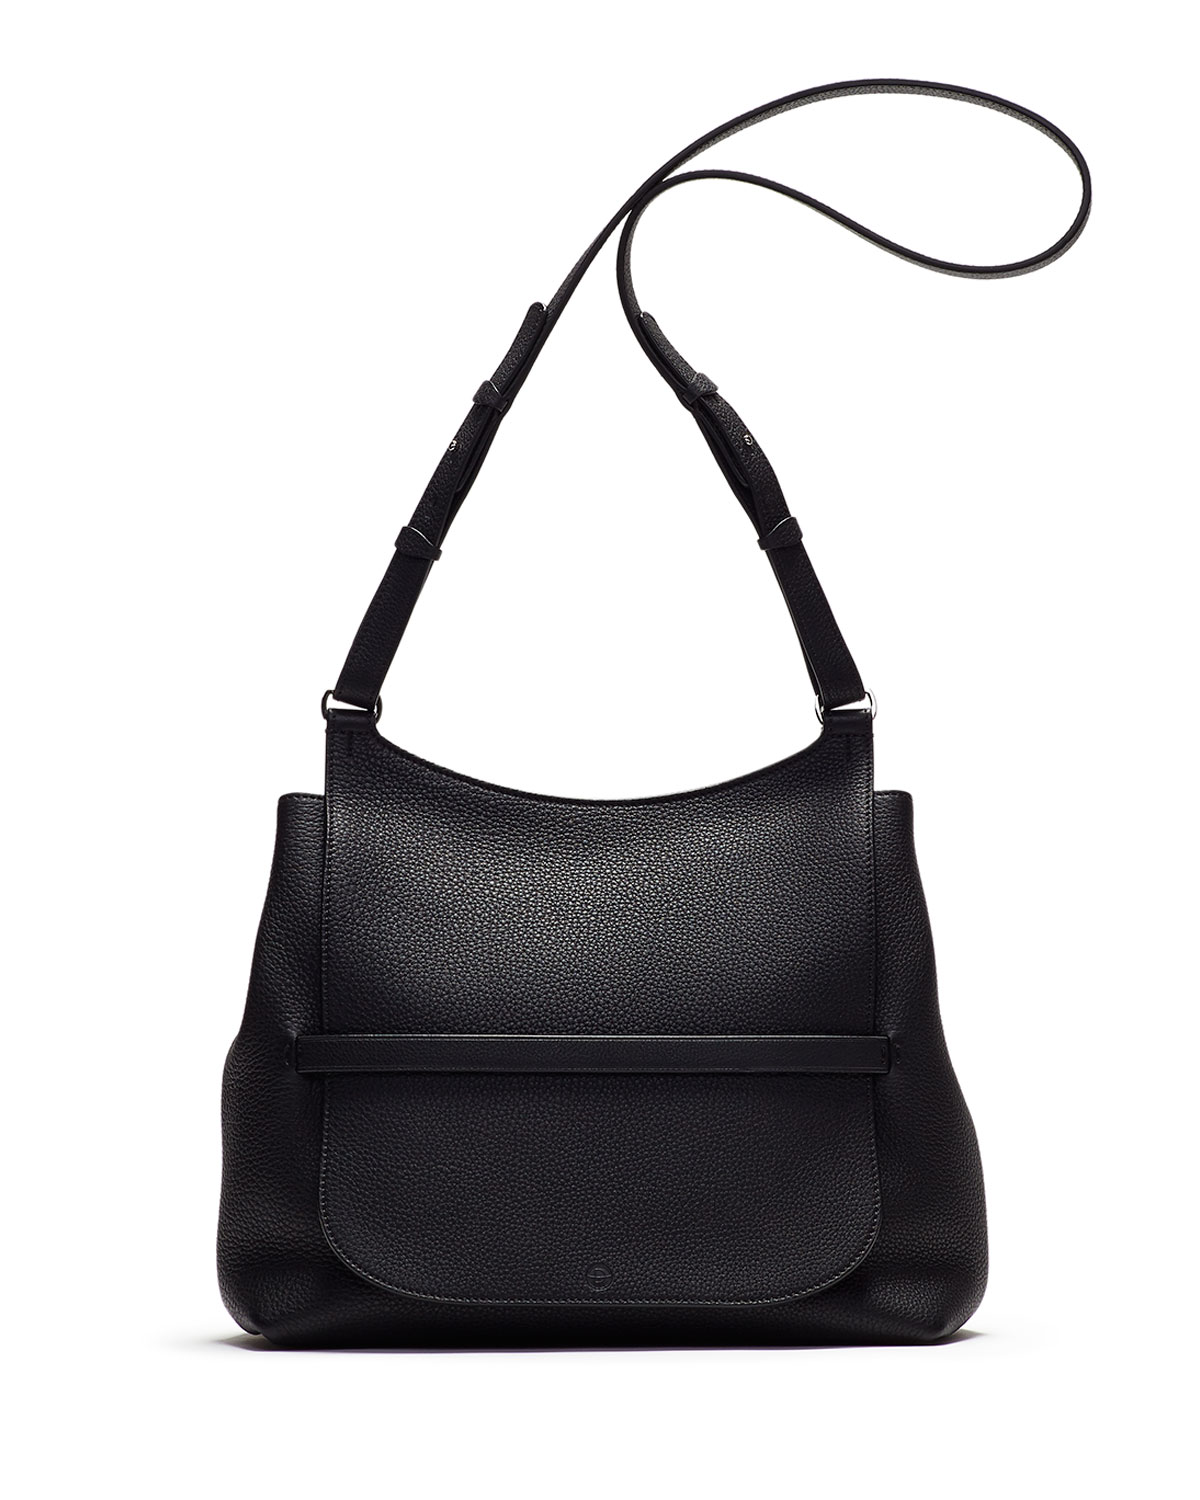 Sideby Pebbled Calfskin Crossbody Bag, Black